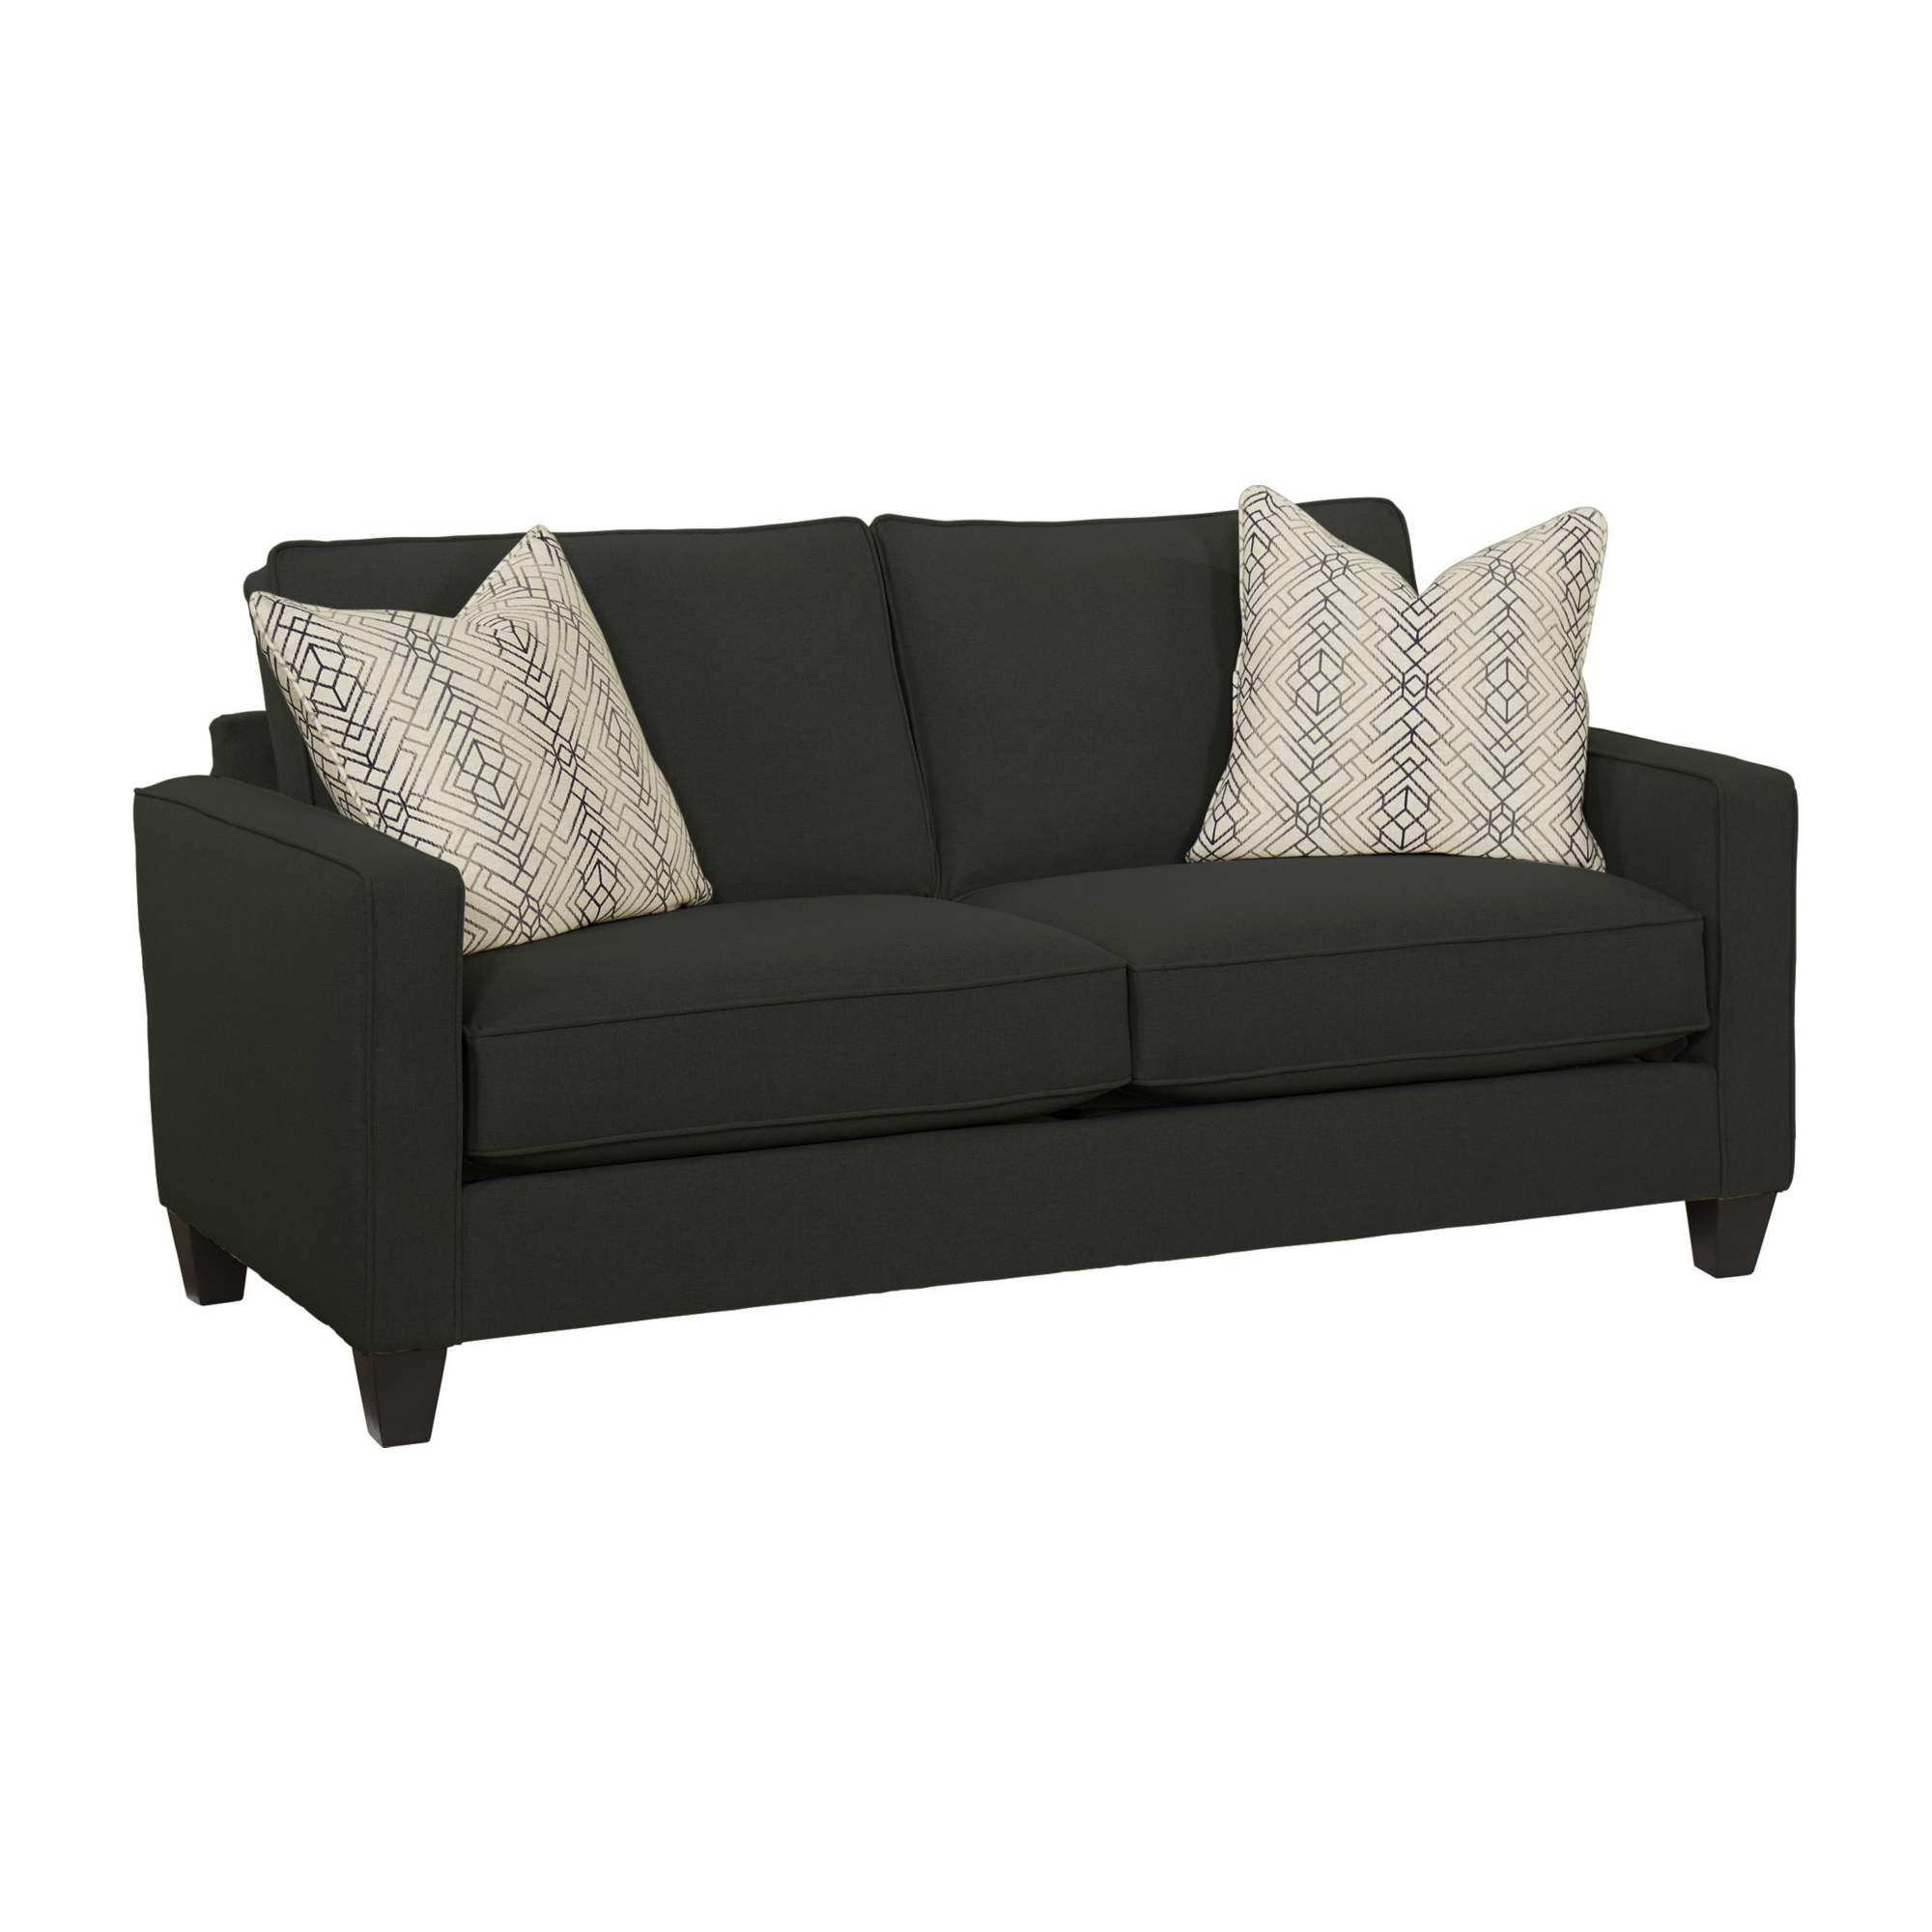 Natalie Sofa Find The Perfect Style